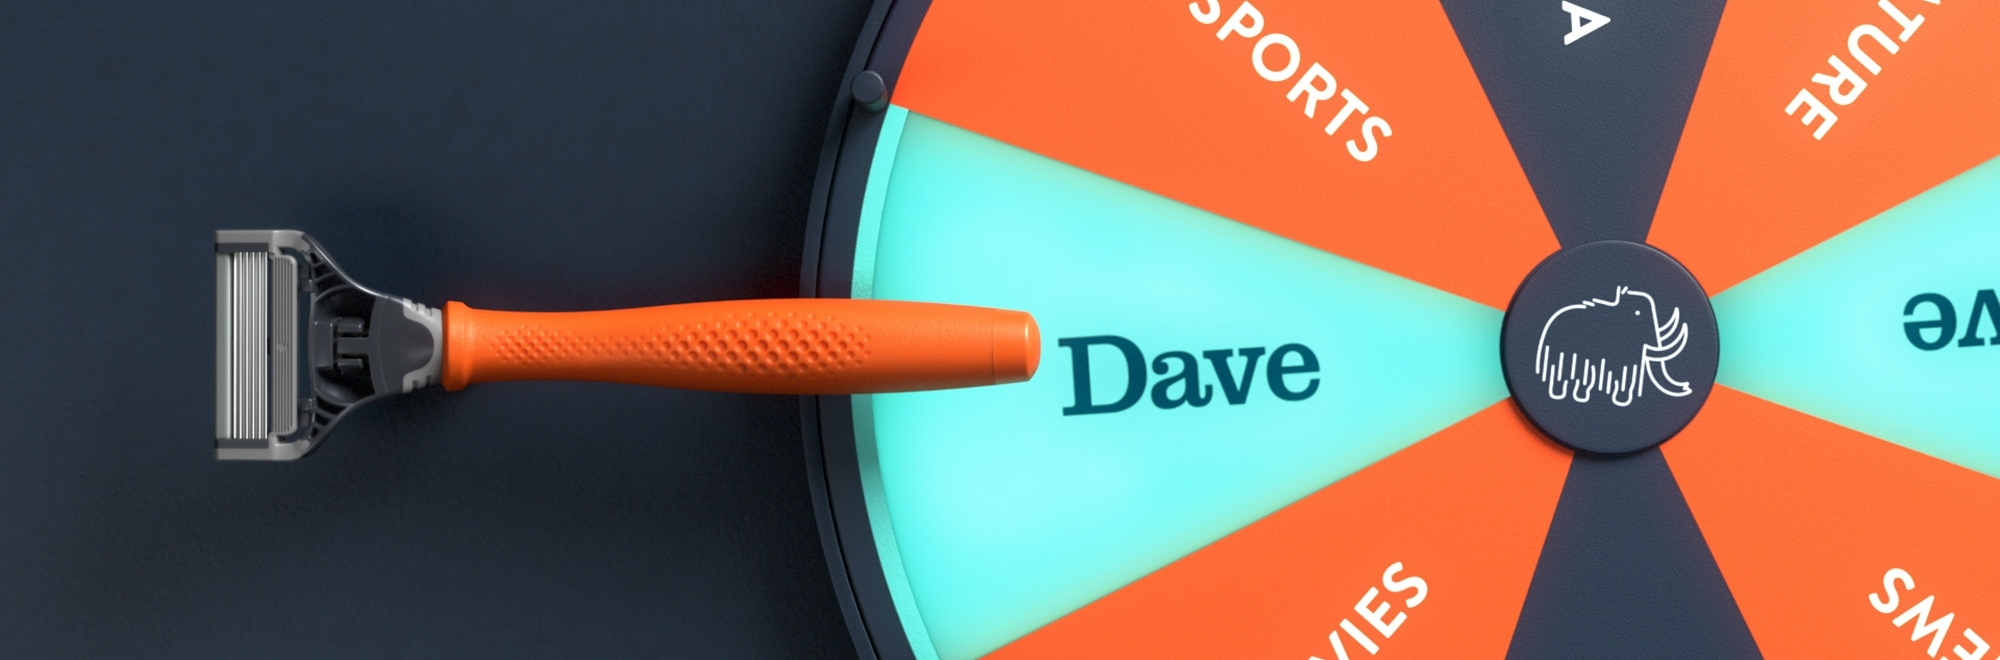 Harry's activates Weekends on Dave, its first TV sponsorship, with post-modern idents created by Brothers and Sisters